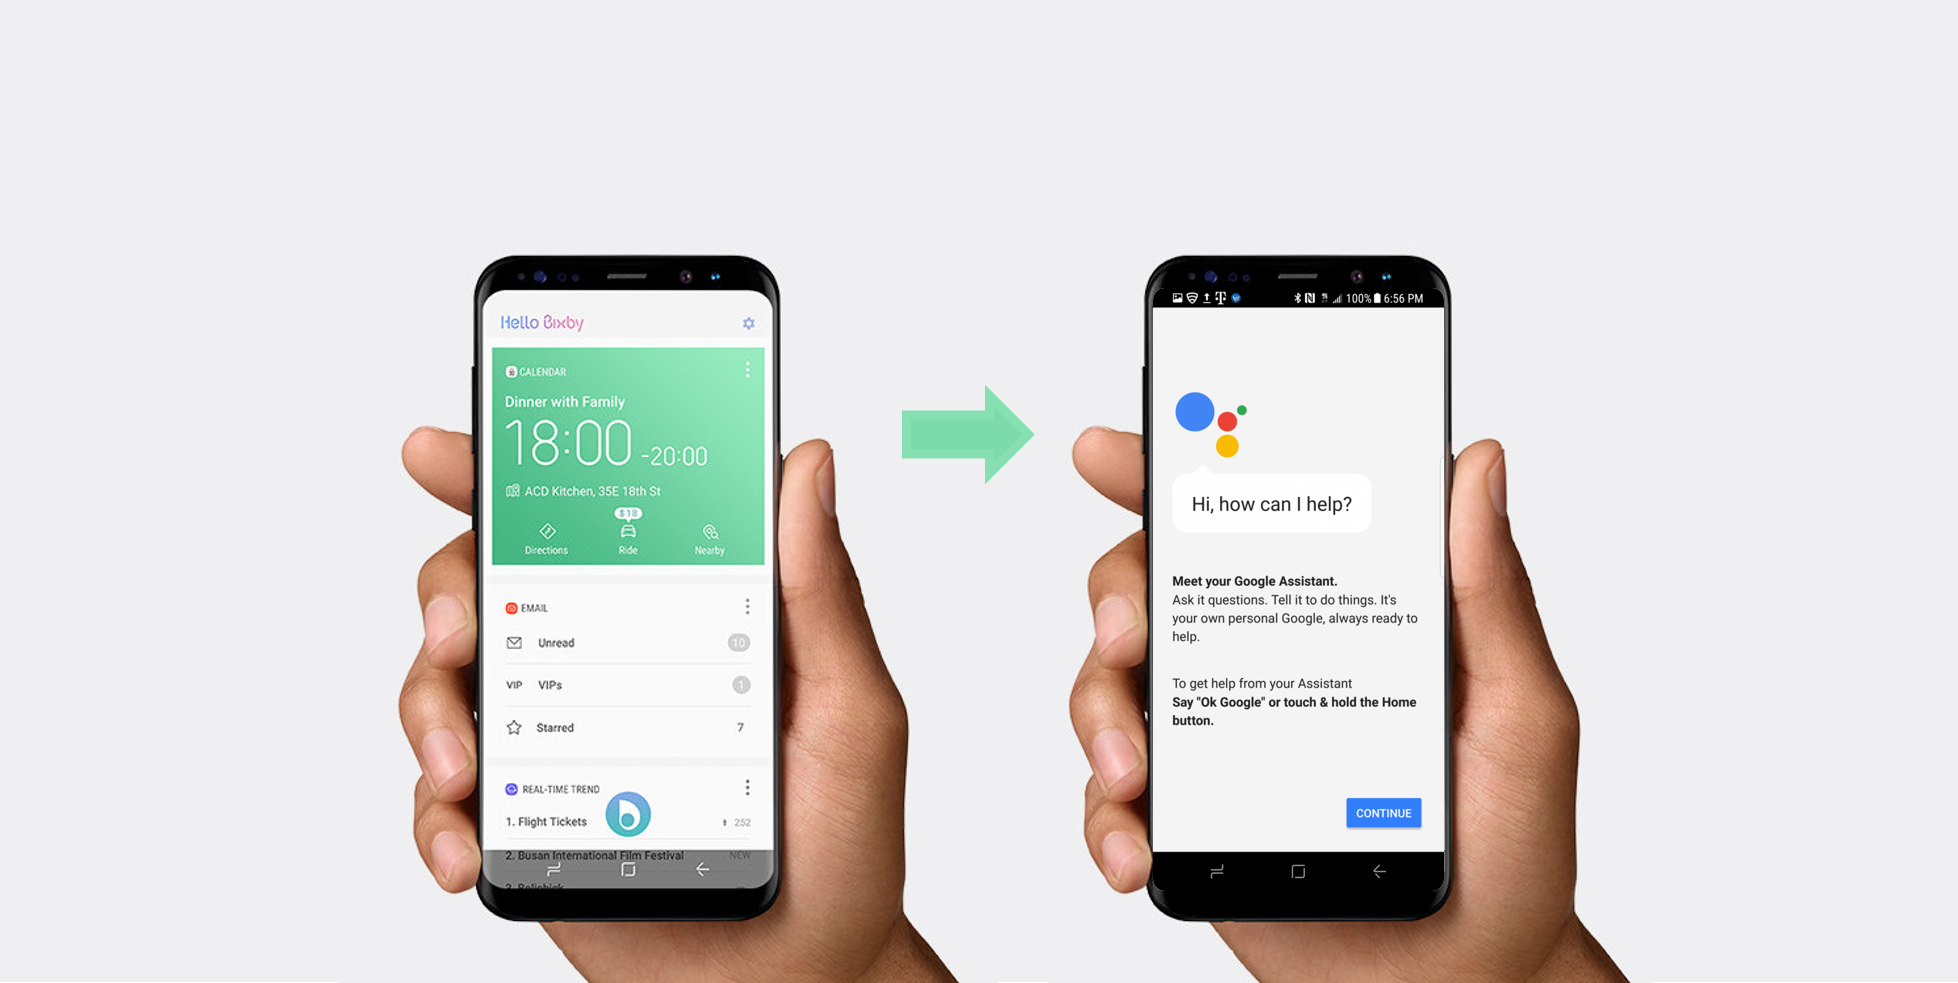 Launch Any App on Galaxy S8's Dedicated Bixby Button